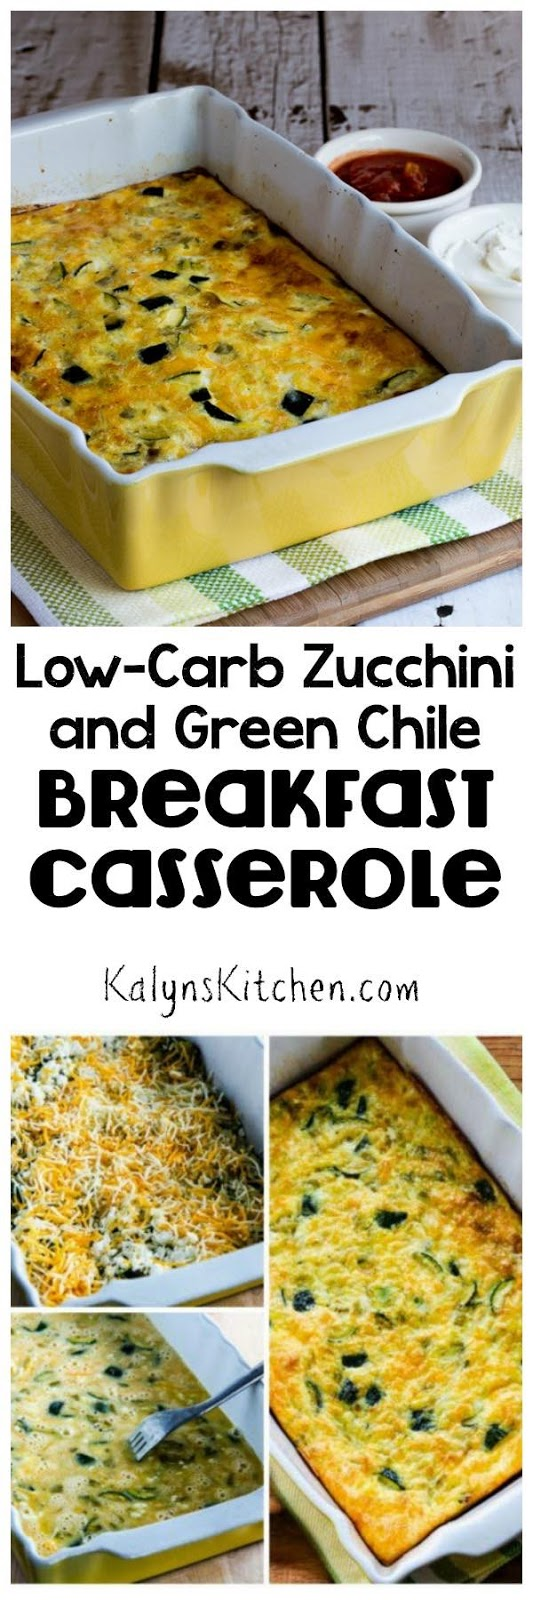 ... Kitchen®: Low-Carb Zucchini and Green Chile Breakfast Casserole